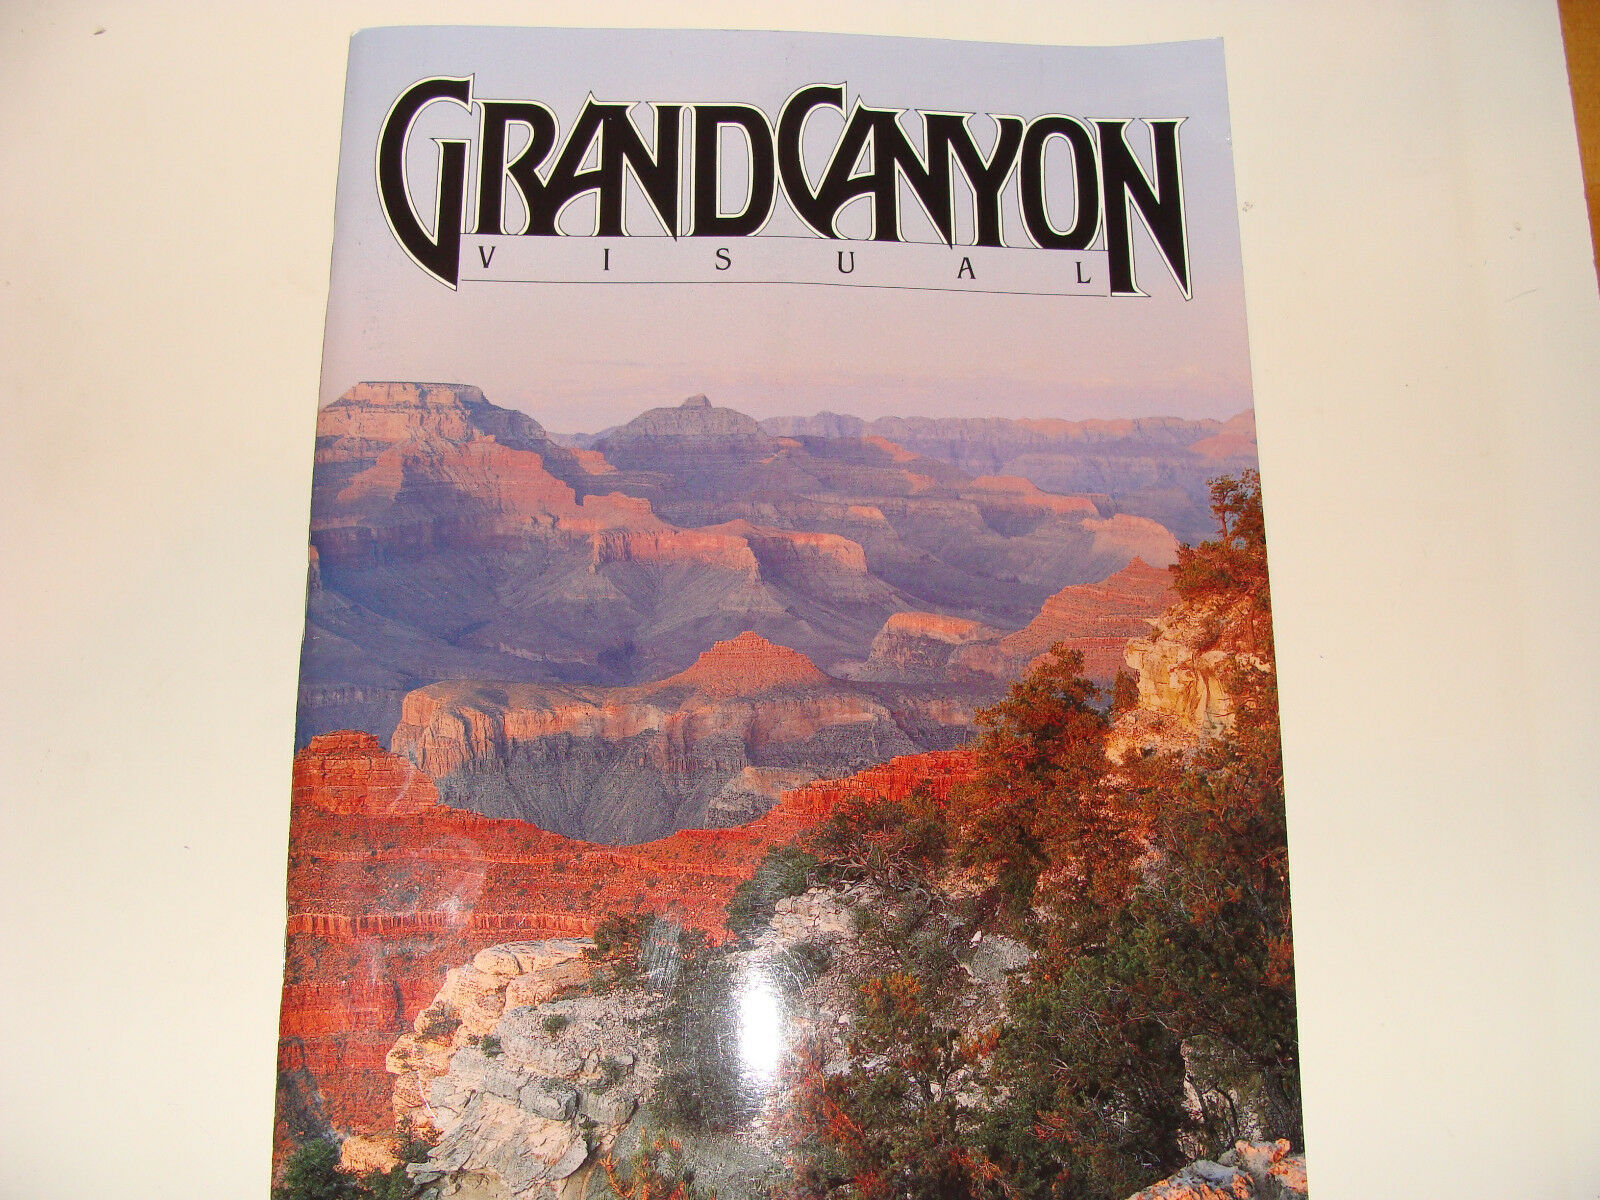 Grand Canyon Visual by Hoffman and John Floyd Hoffman (1987, Paperback) |